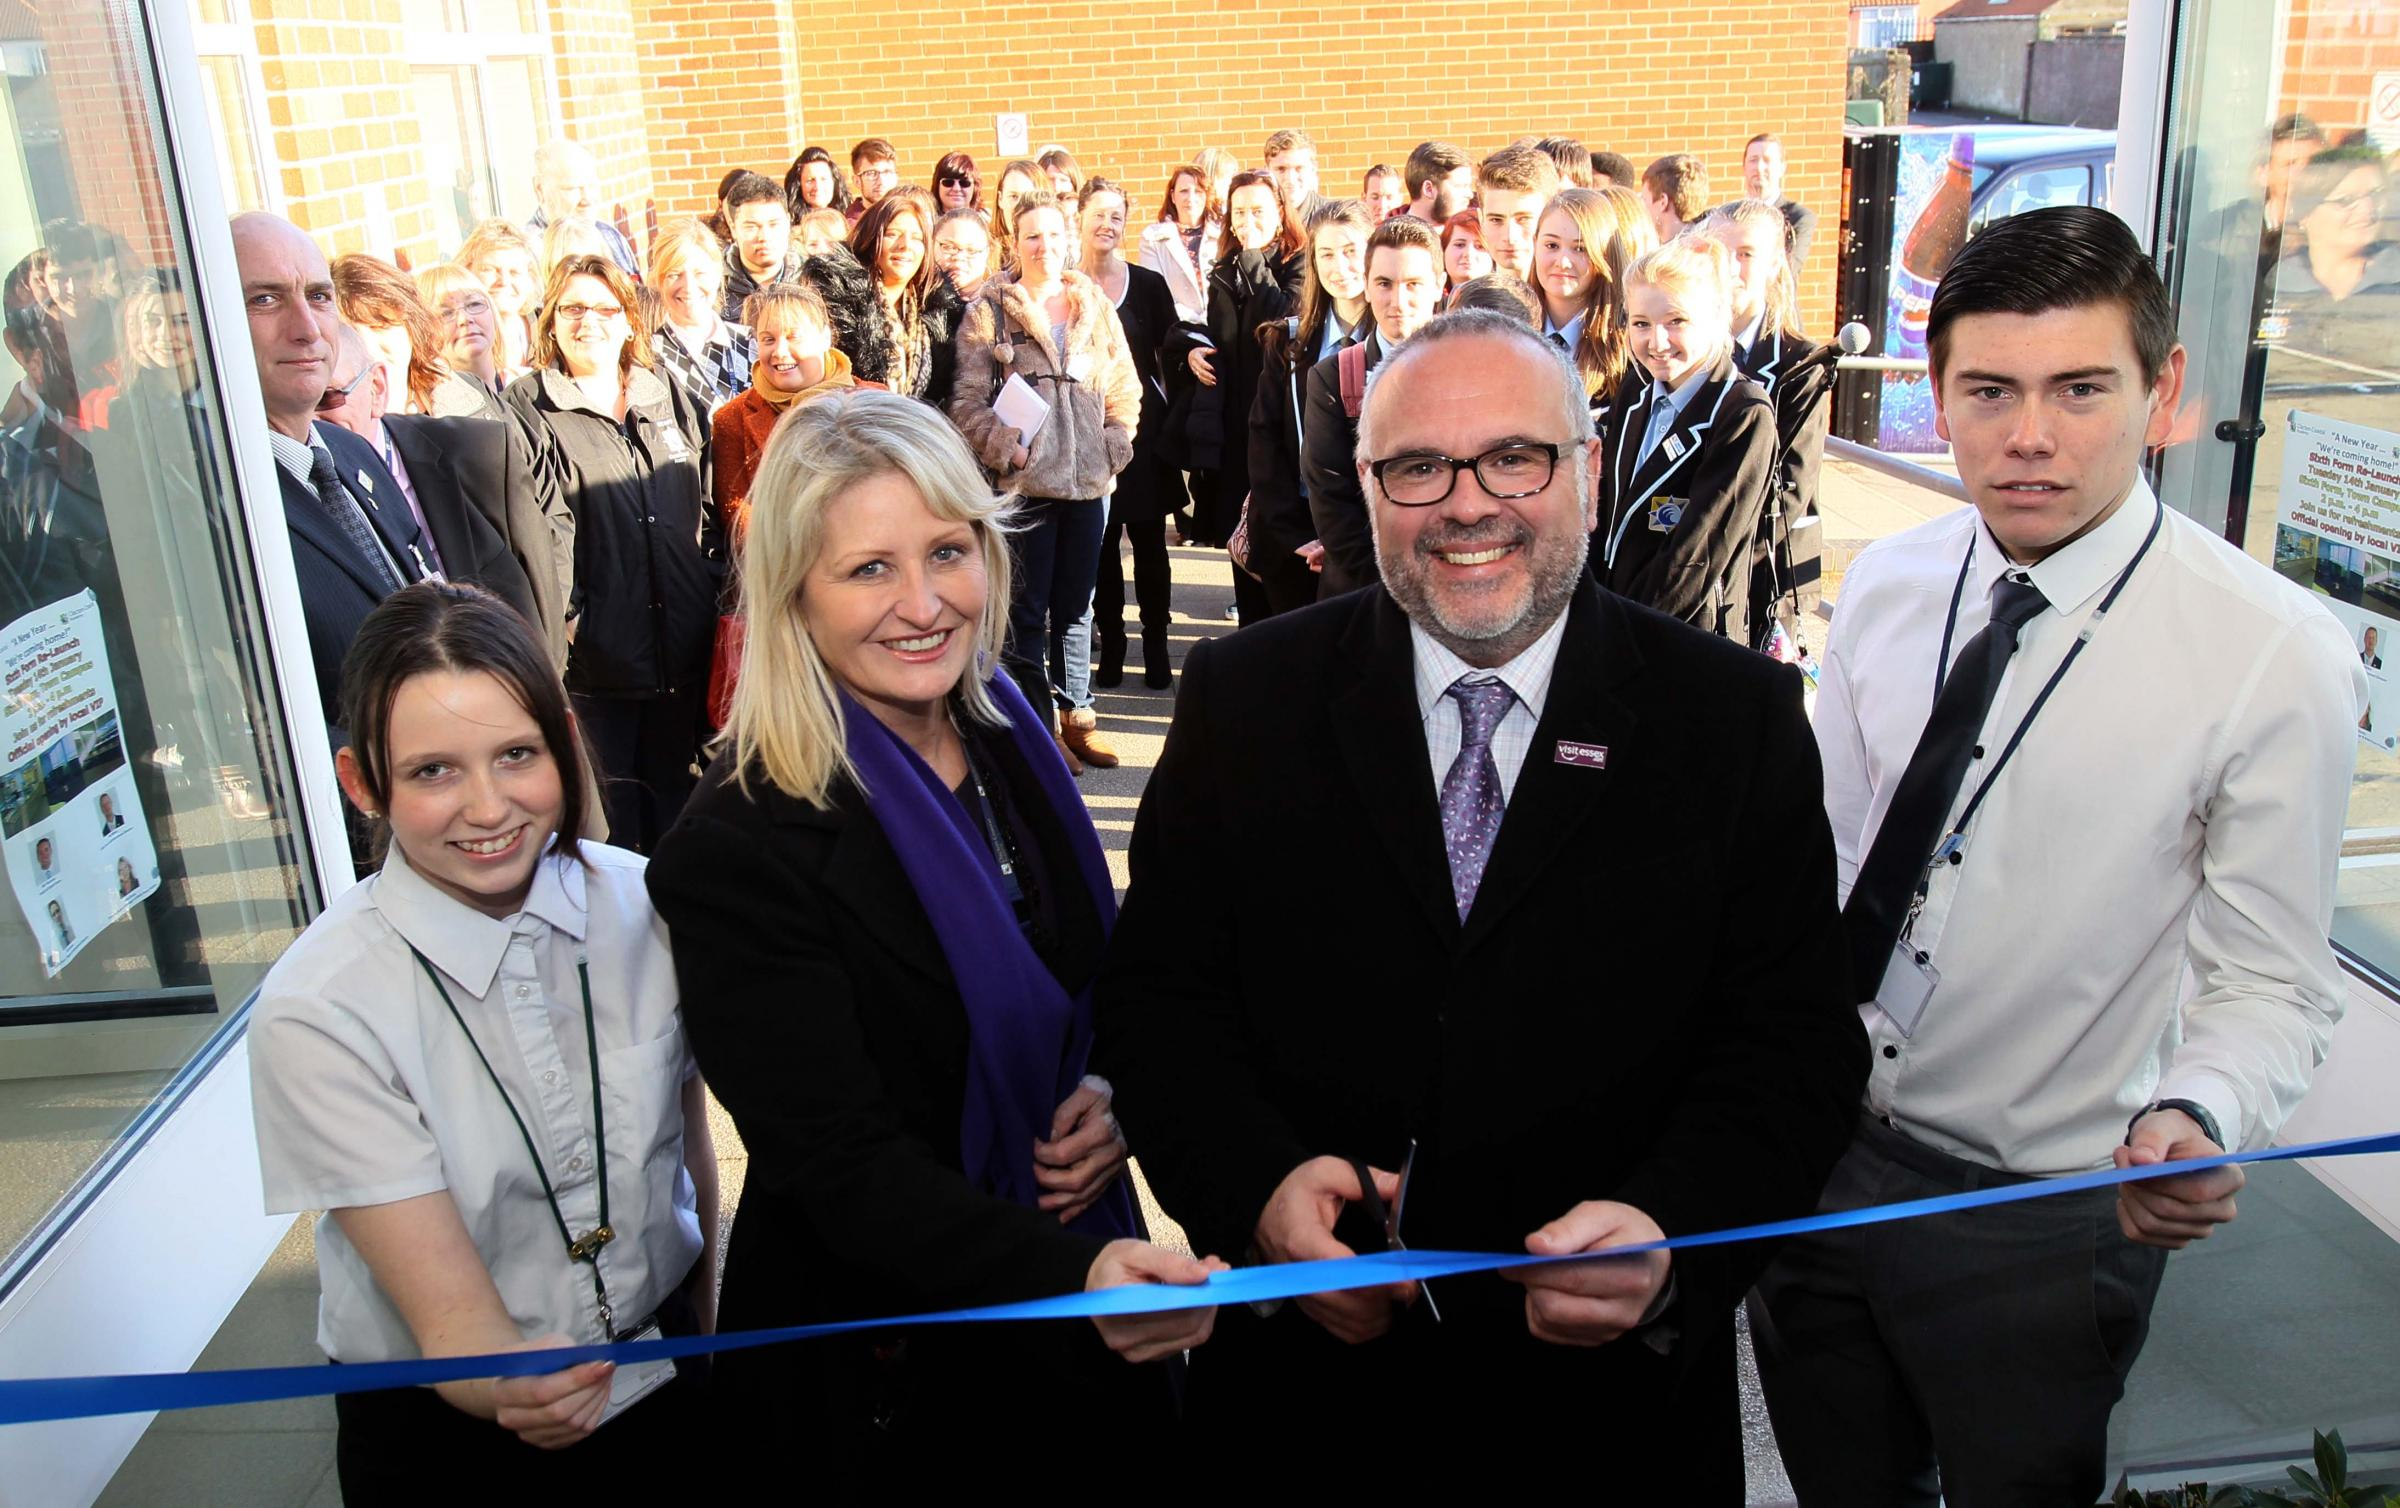 New sixth form centre opened at Clacton academy